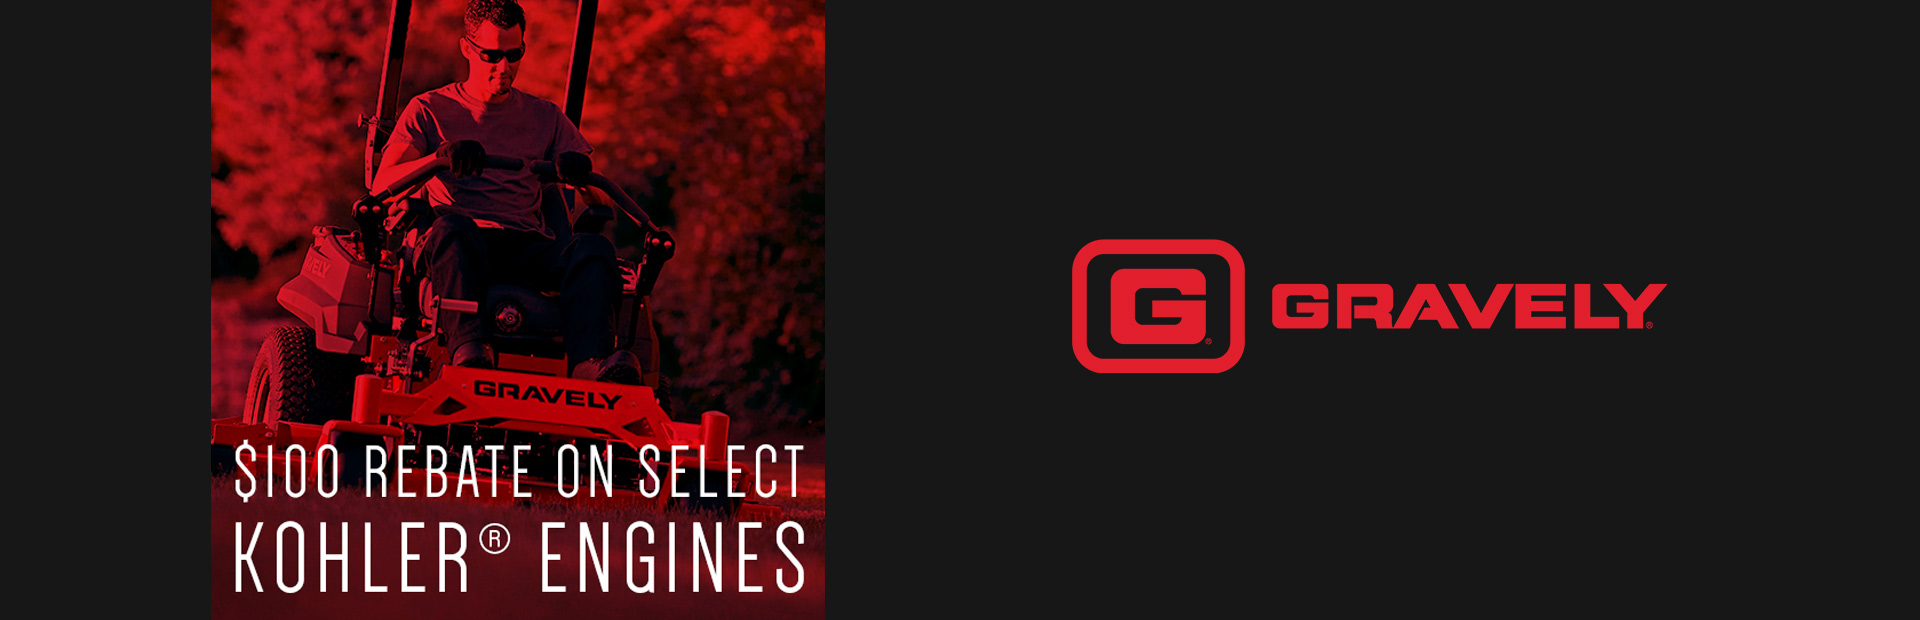 Gravely - $100 Rebate On Select Kohler® Engines Lube Suppliers Store ...